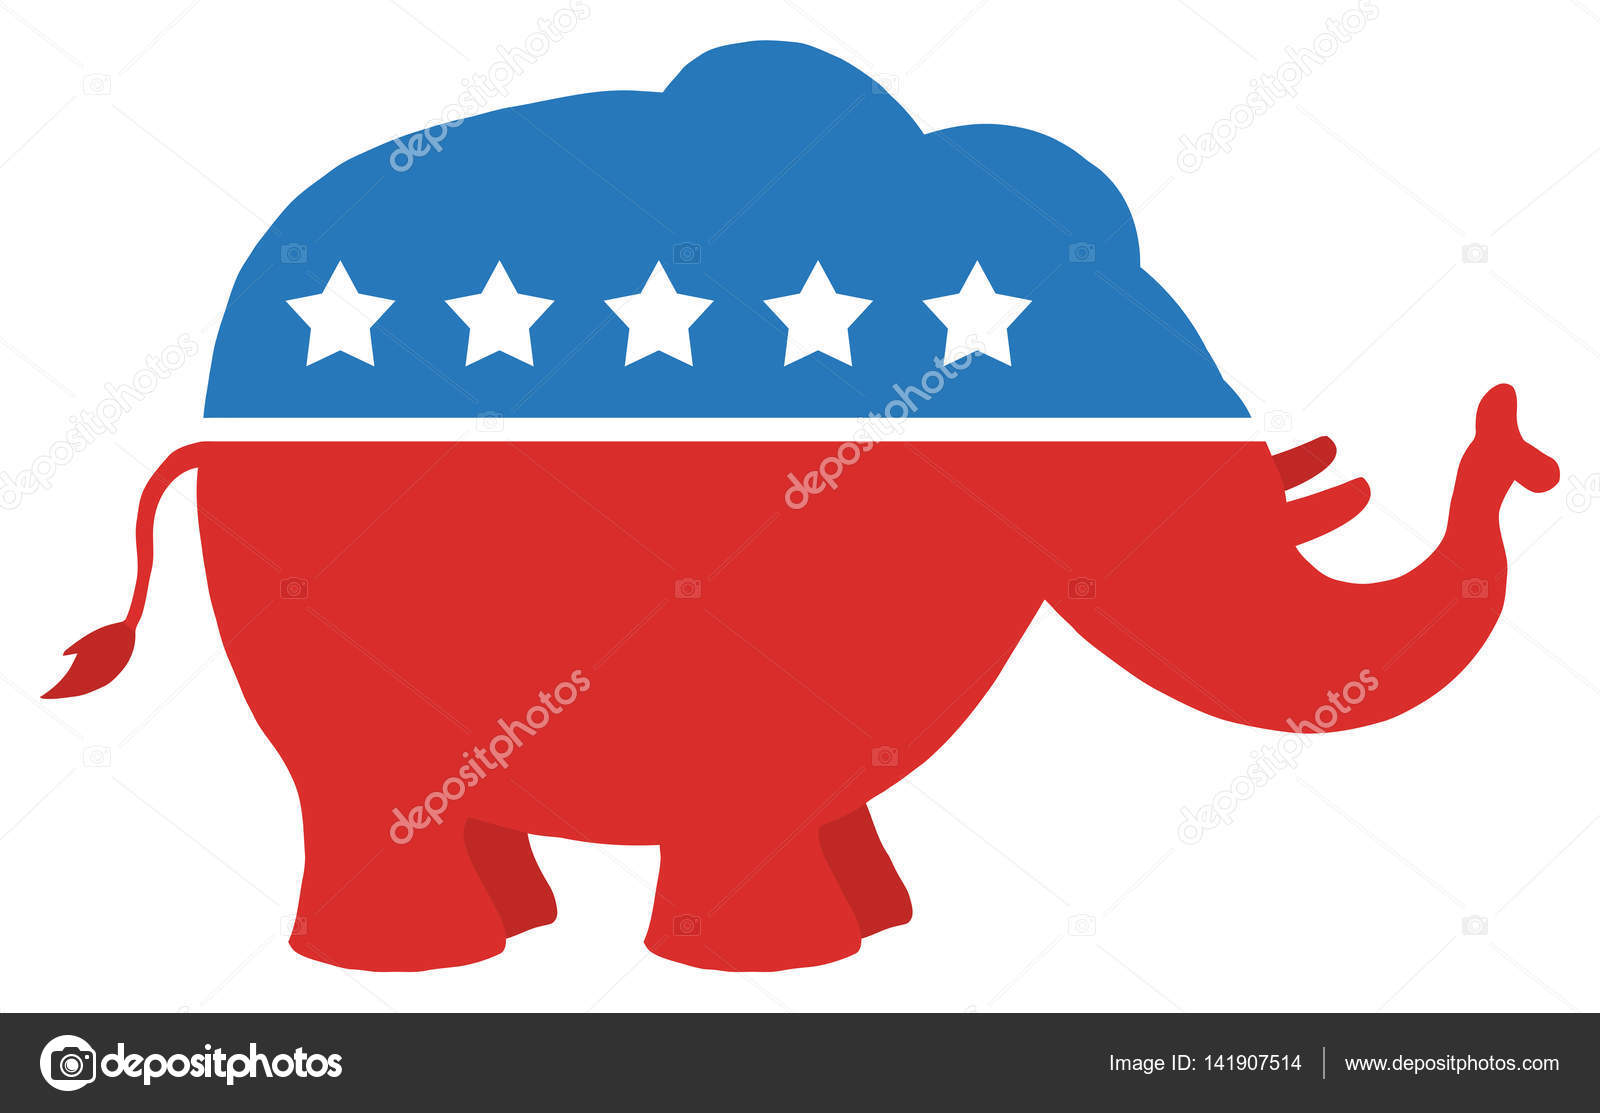 republican elephant illustration stock vector hittoon 141907514 rh depositphotos com  republican elephant vector clip art free